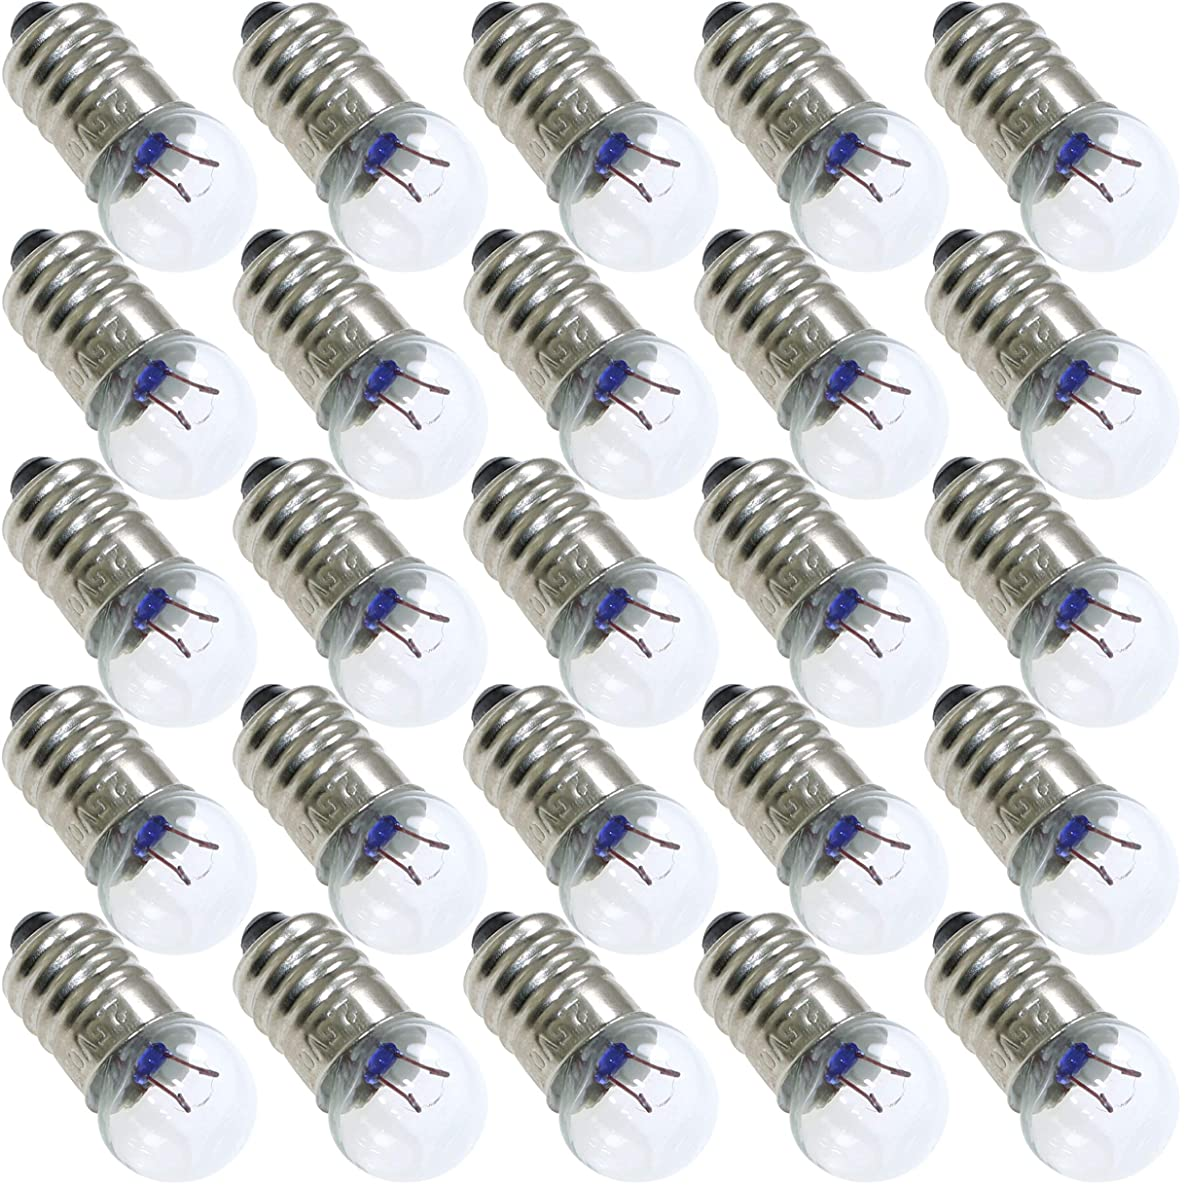 ToToT 25pcs E10 Mini Light Bulbs 2.5V 0.3A Physical Electrical Experiment Screw Base Indicator Light Incandescent Bulb Old-Fashioned Flashlight Lamp